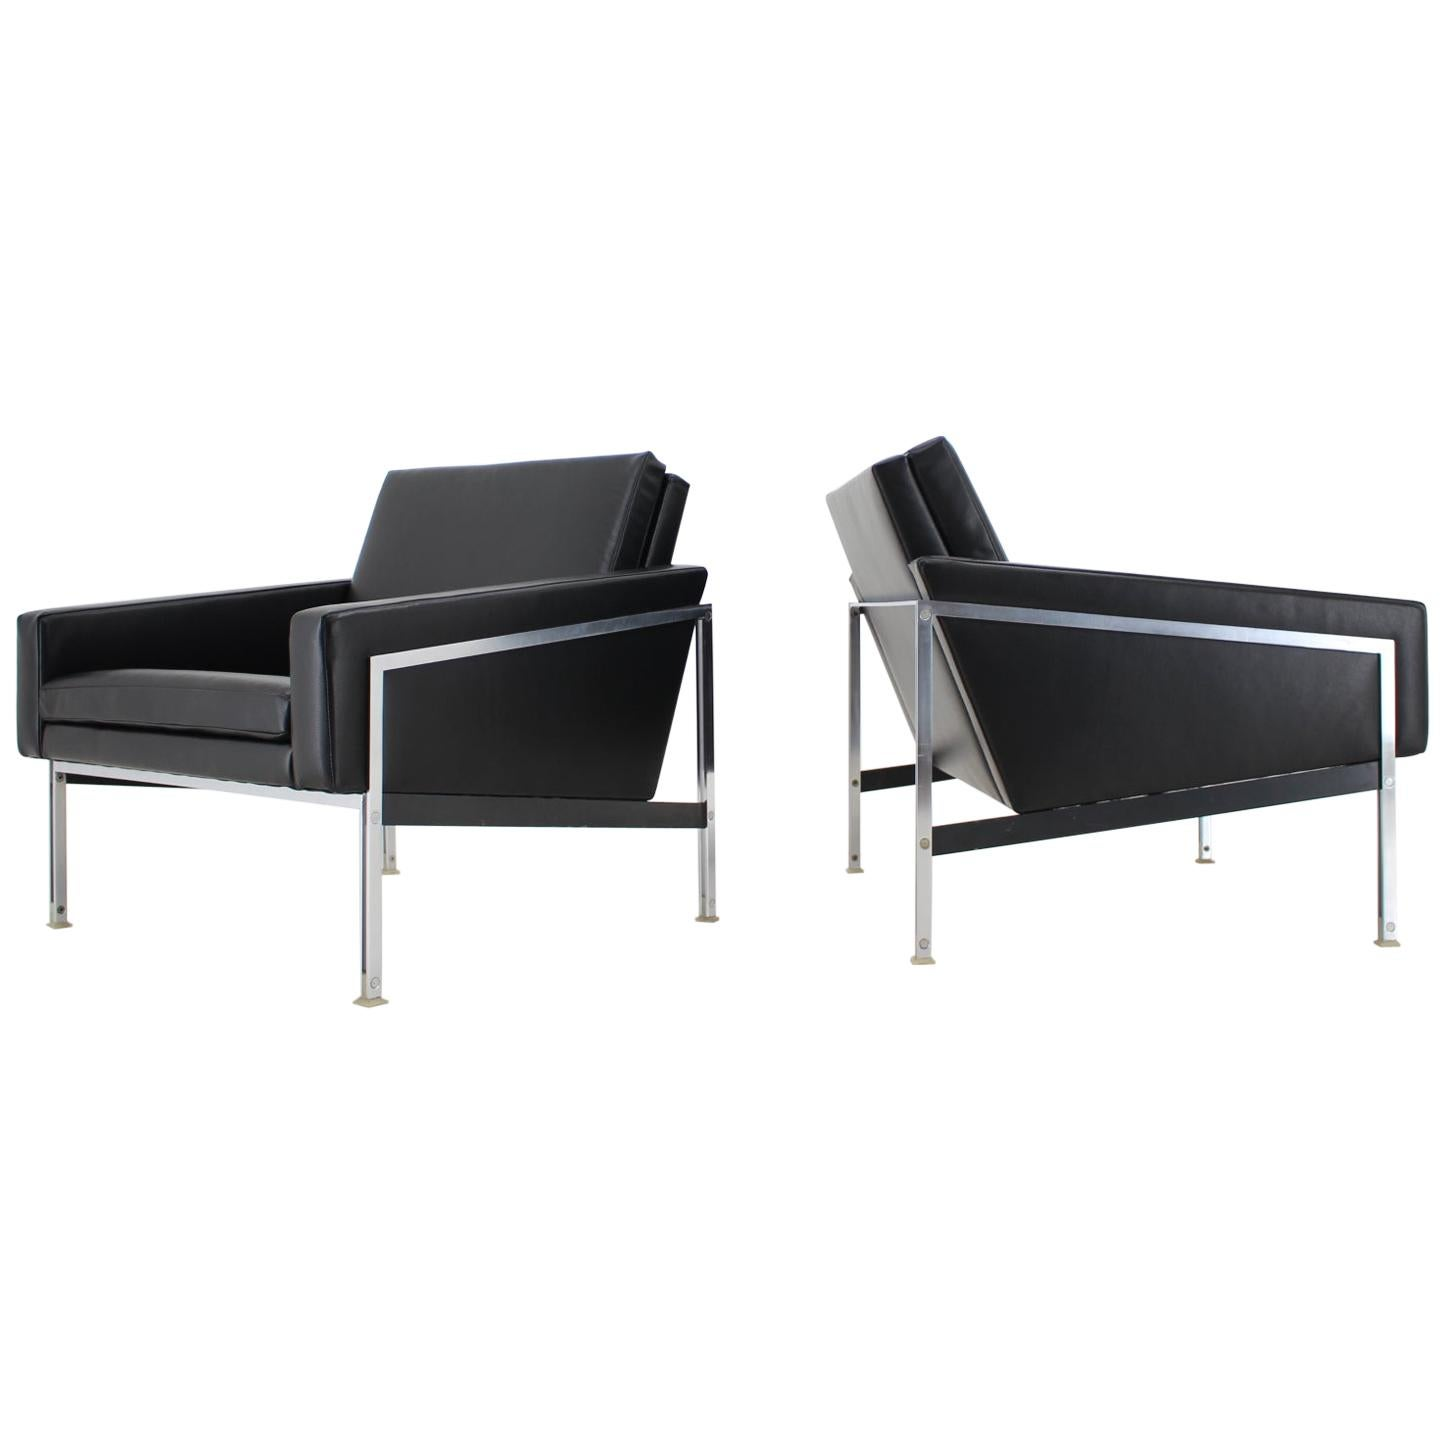 1960s Pair of Steel and Leather Armchairs by Lübke, Germany